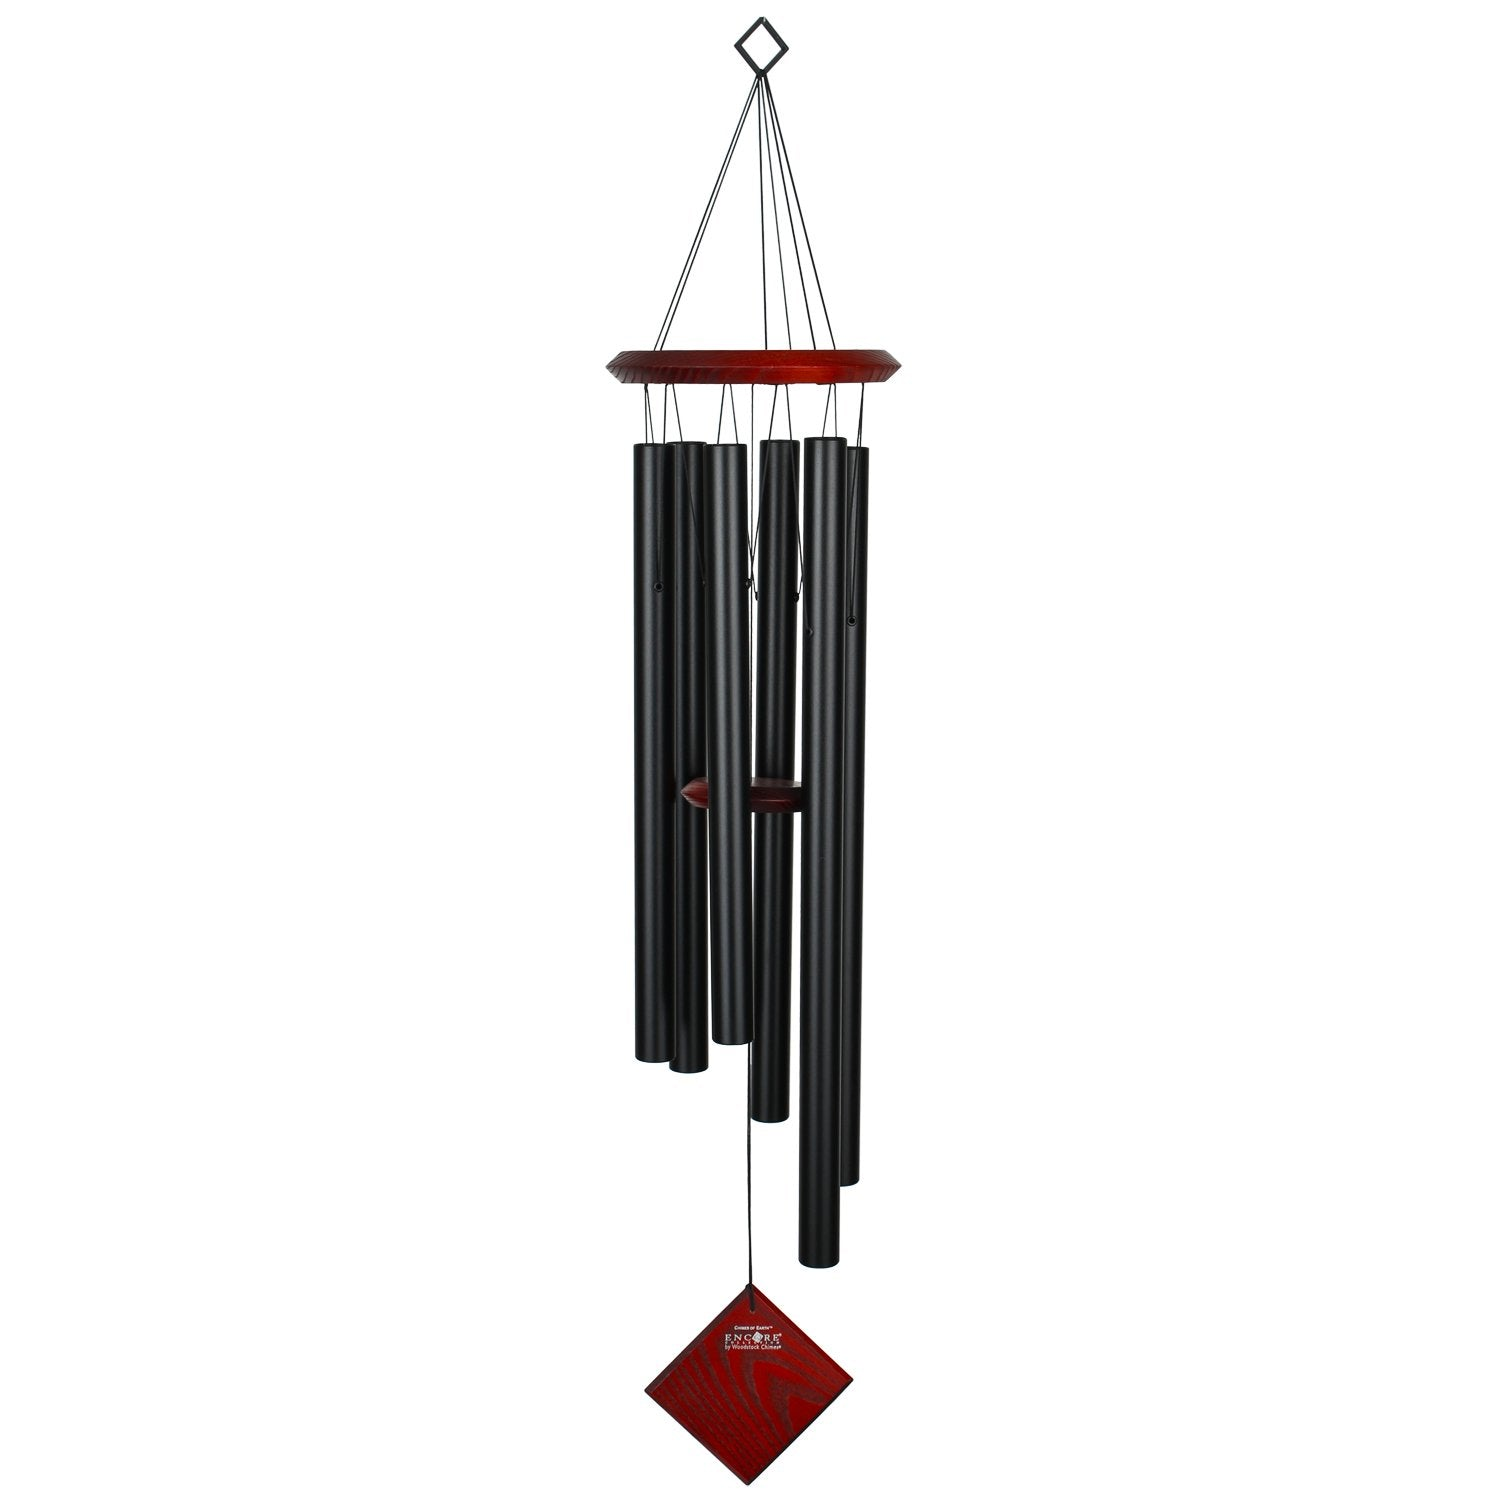 Encore Chimes of Earth - Black full product image